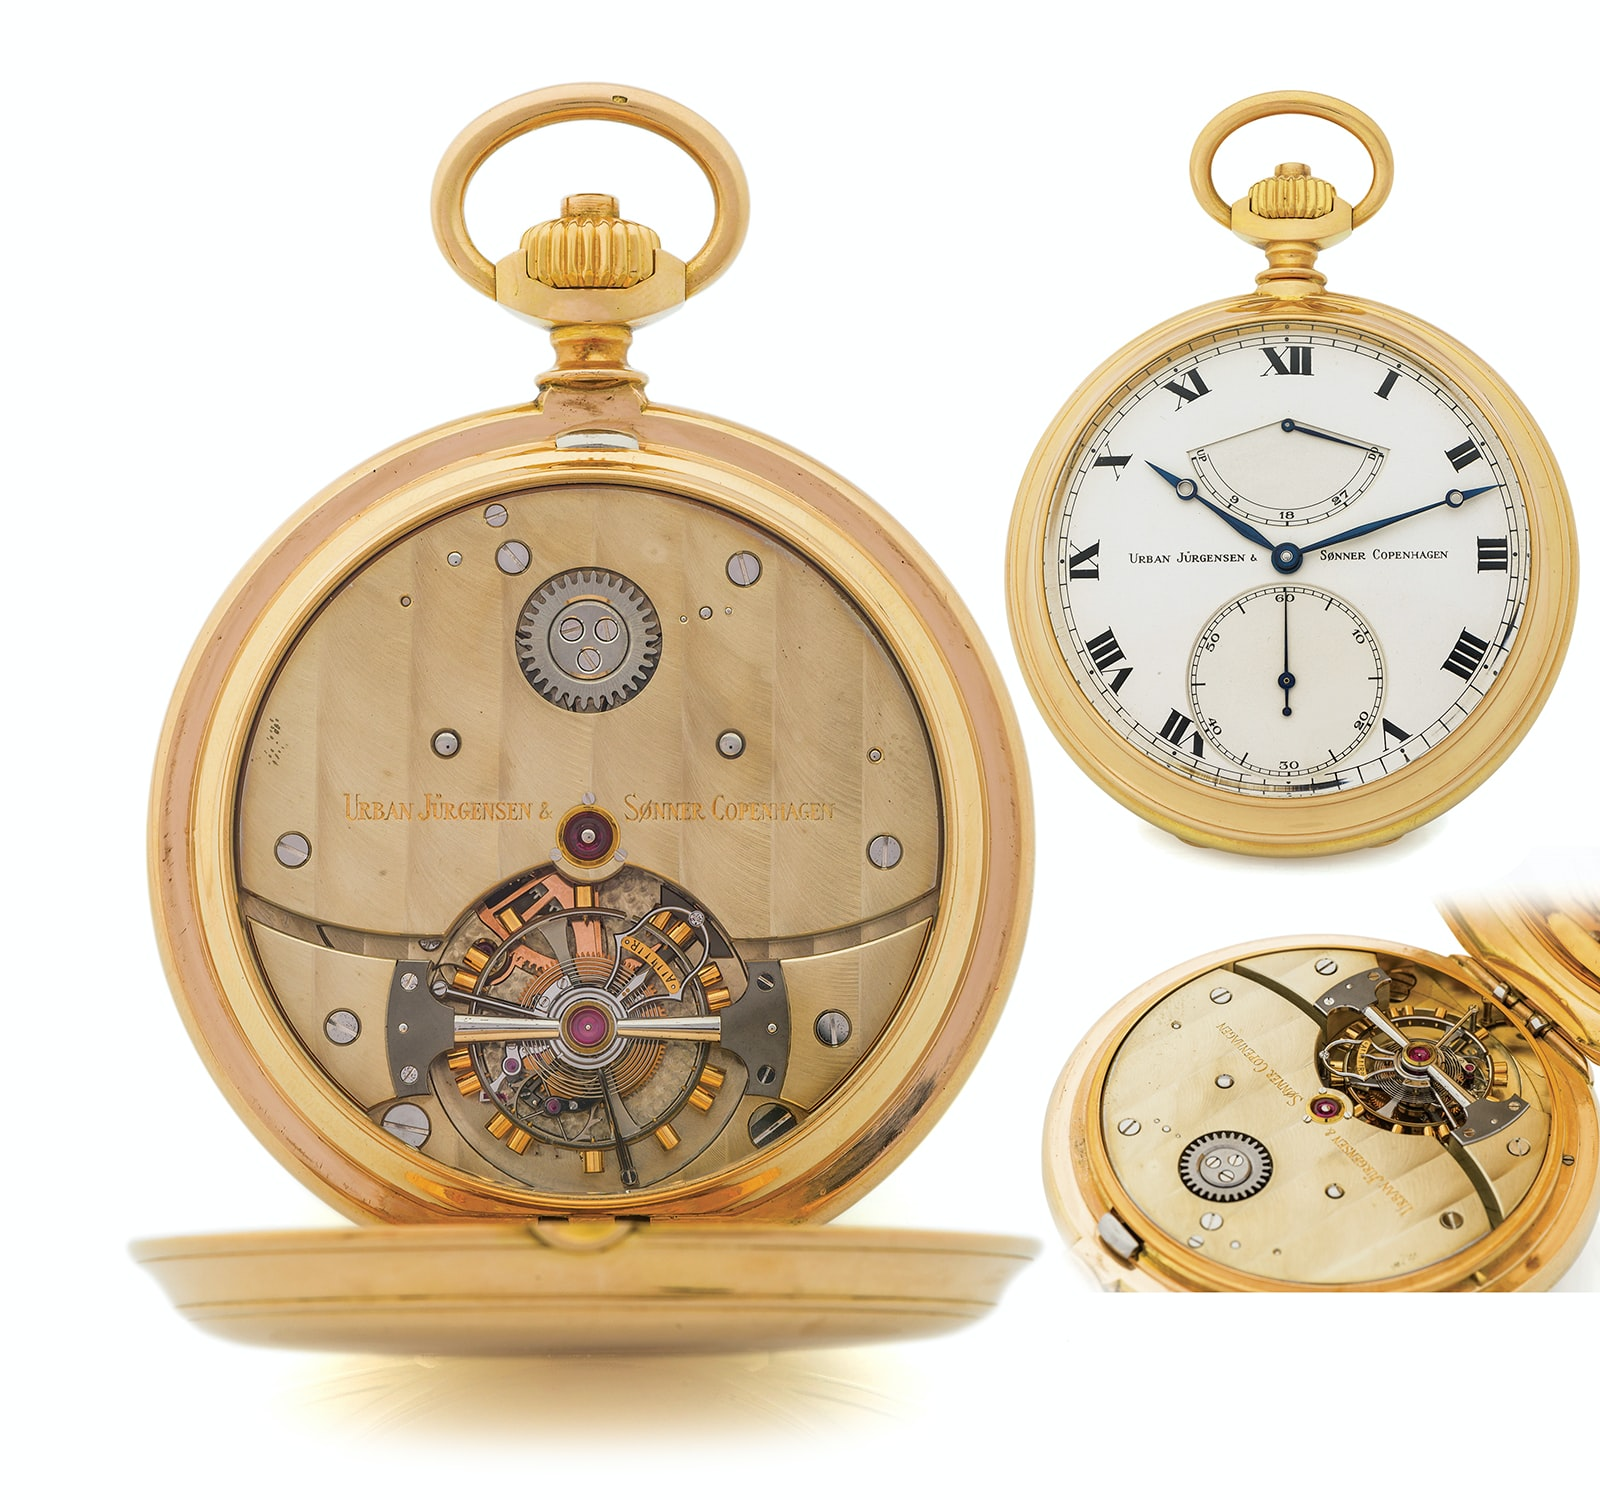 Derek Pratt Tourbillon Seven Pocket Watches That Will Make You Forget Wristwatches (And Wonder Why They've Gotten So Pricey) From The Antiquorum 'Important Modern & Vintage Timepieces' Auction Seven Pocket Watches That Will Make You Forget Wristwatches (And Wonder Why They've Gotten So Pricey) From The Antiquorum 'Important Modern & Vintage Timepieces' Auction f2